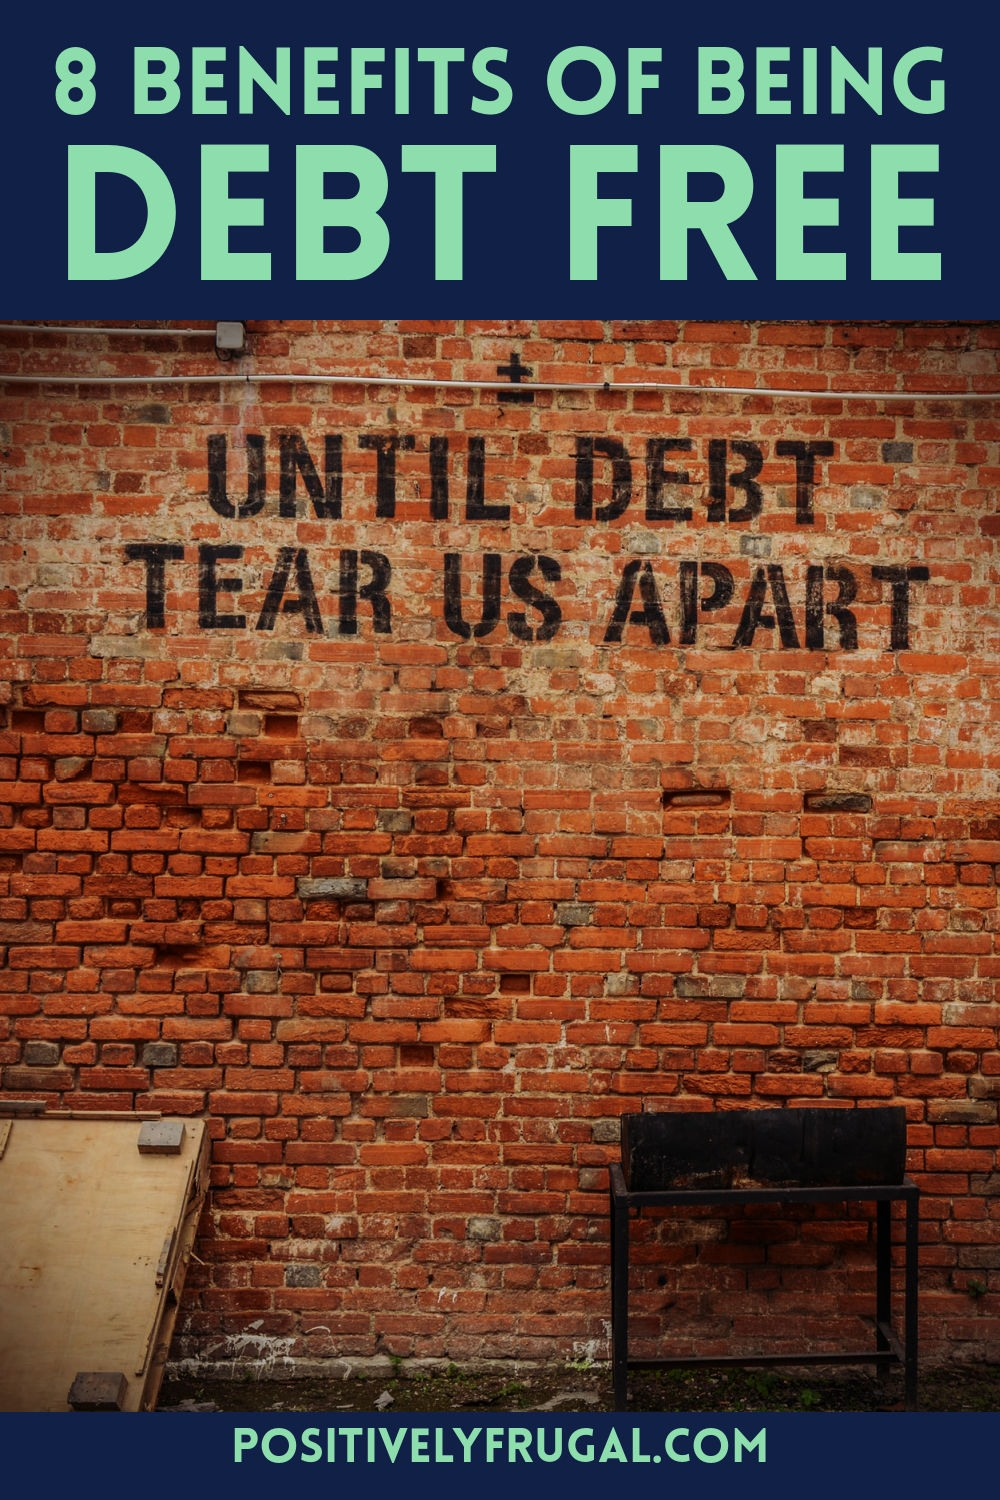 8 Great Benefits of Being Debt Free by PositivelyFrugal.com